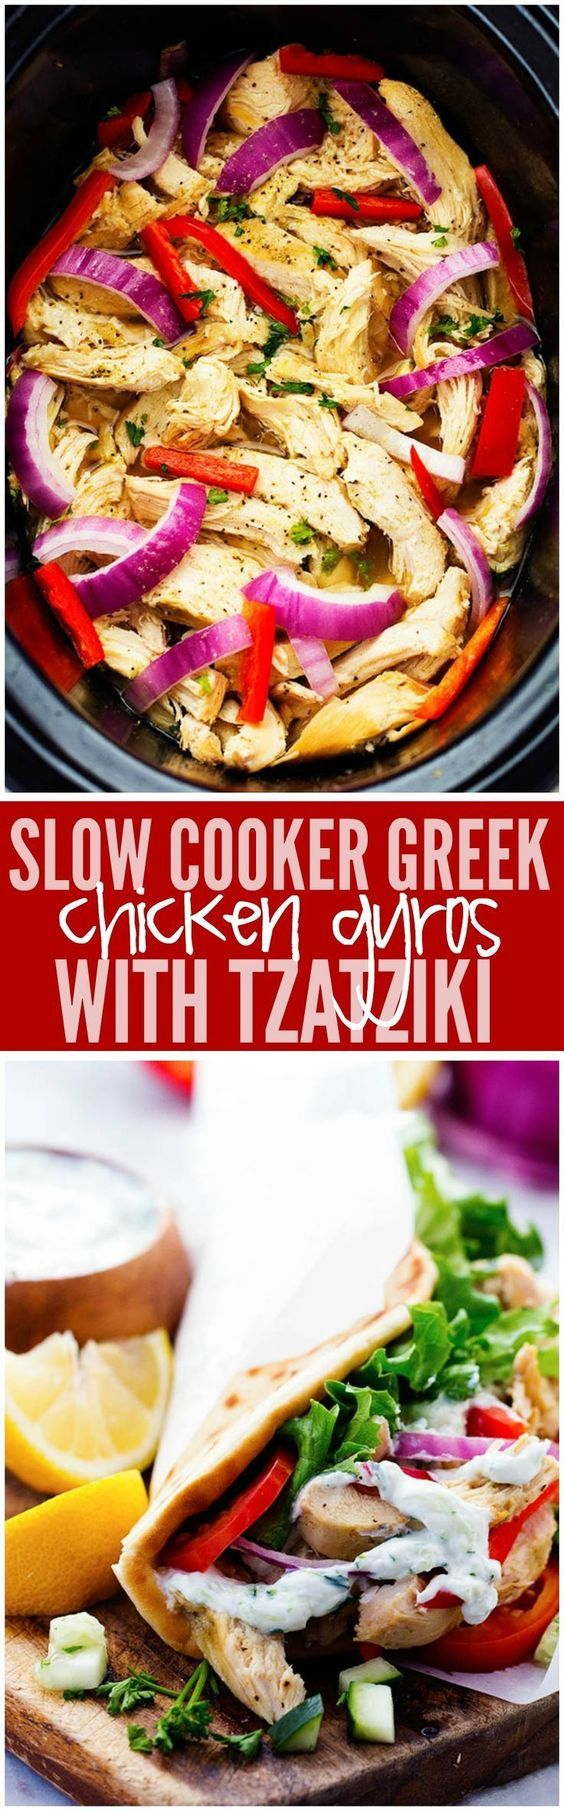 Love Easy Healthy Crockpot Recipes? Here You Can Find Soups, Desserts, Lean Chicken Breast & More. Cheap Crock Pot Meals, Like This BEST Soup Recipe...